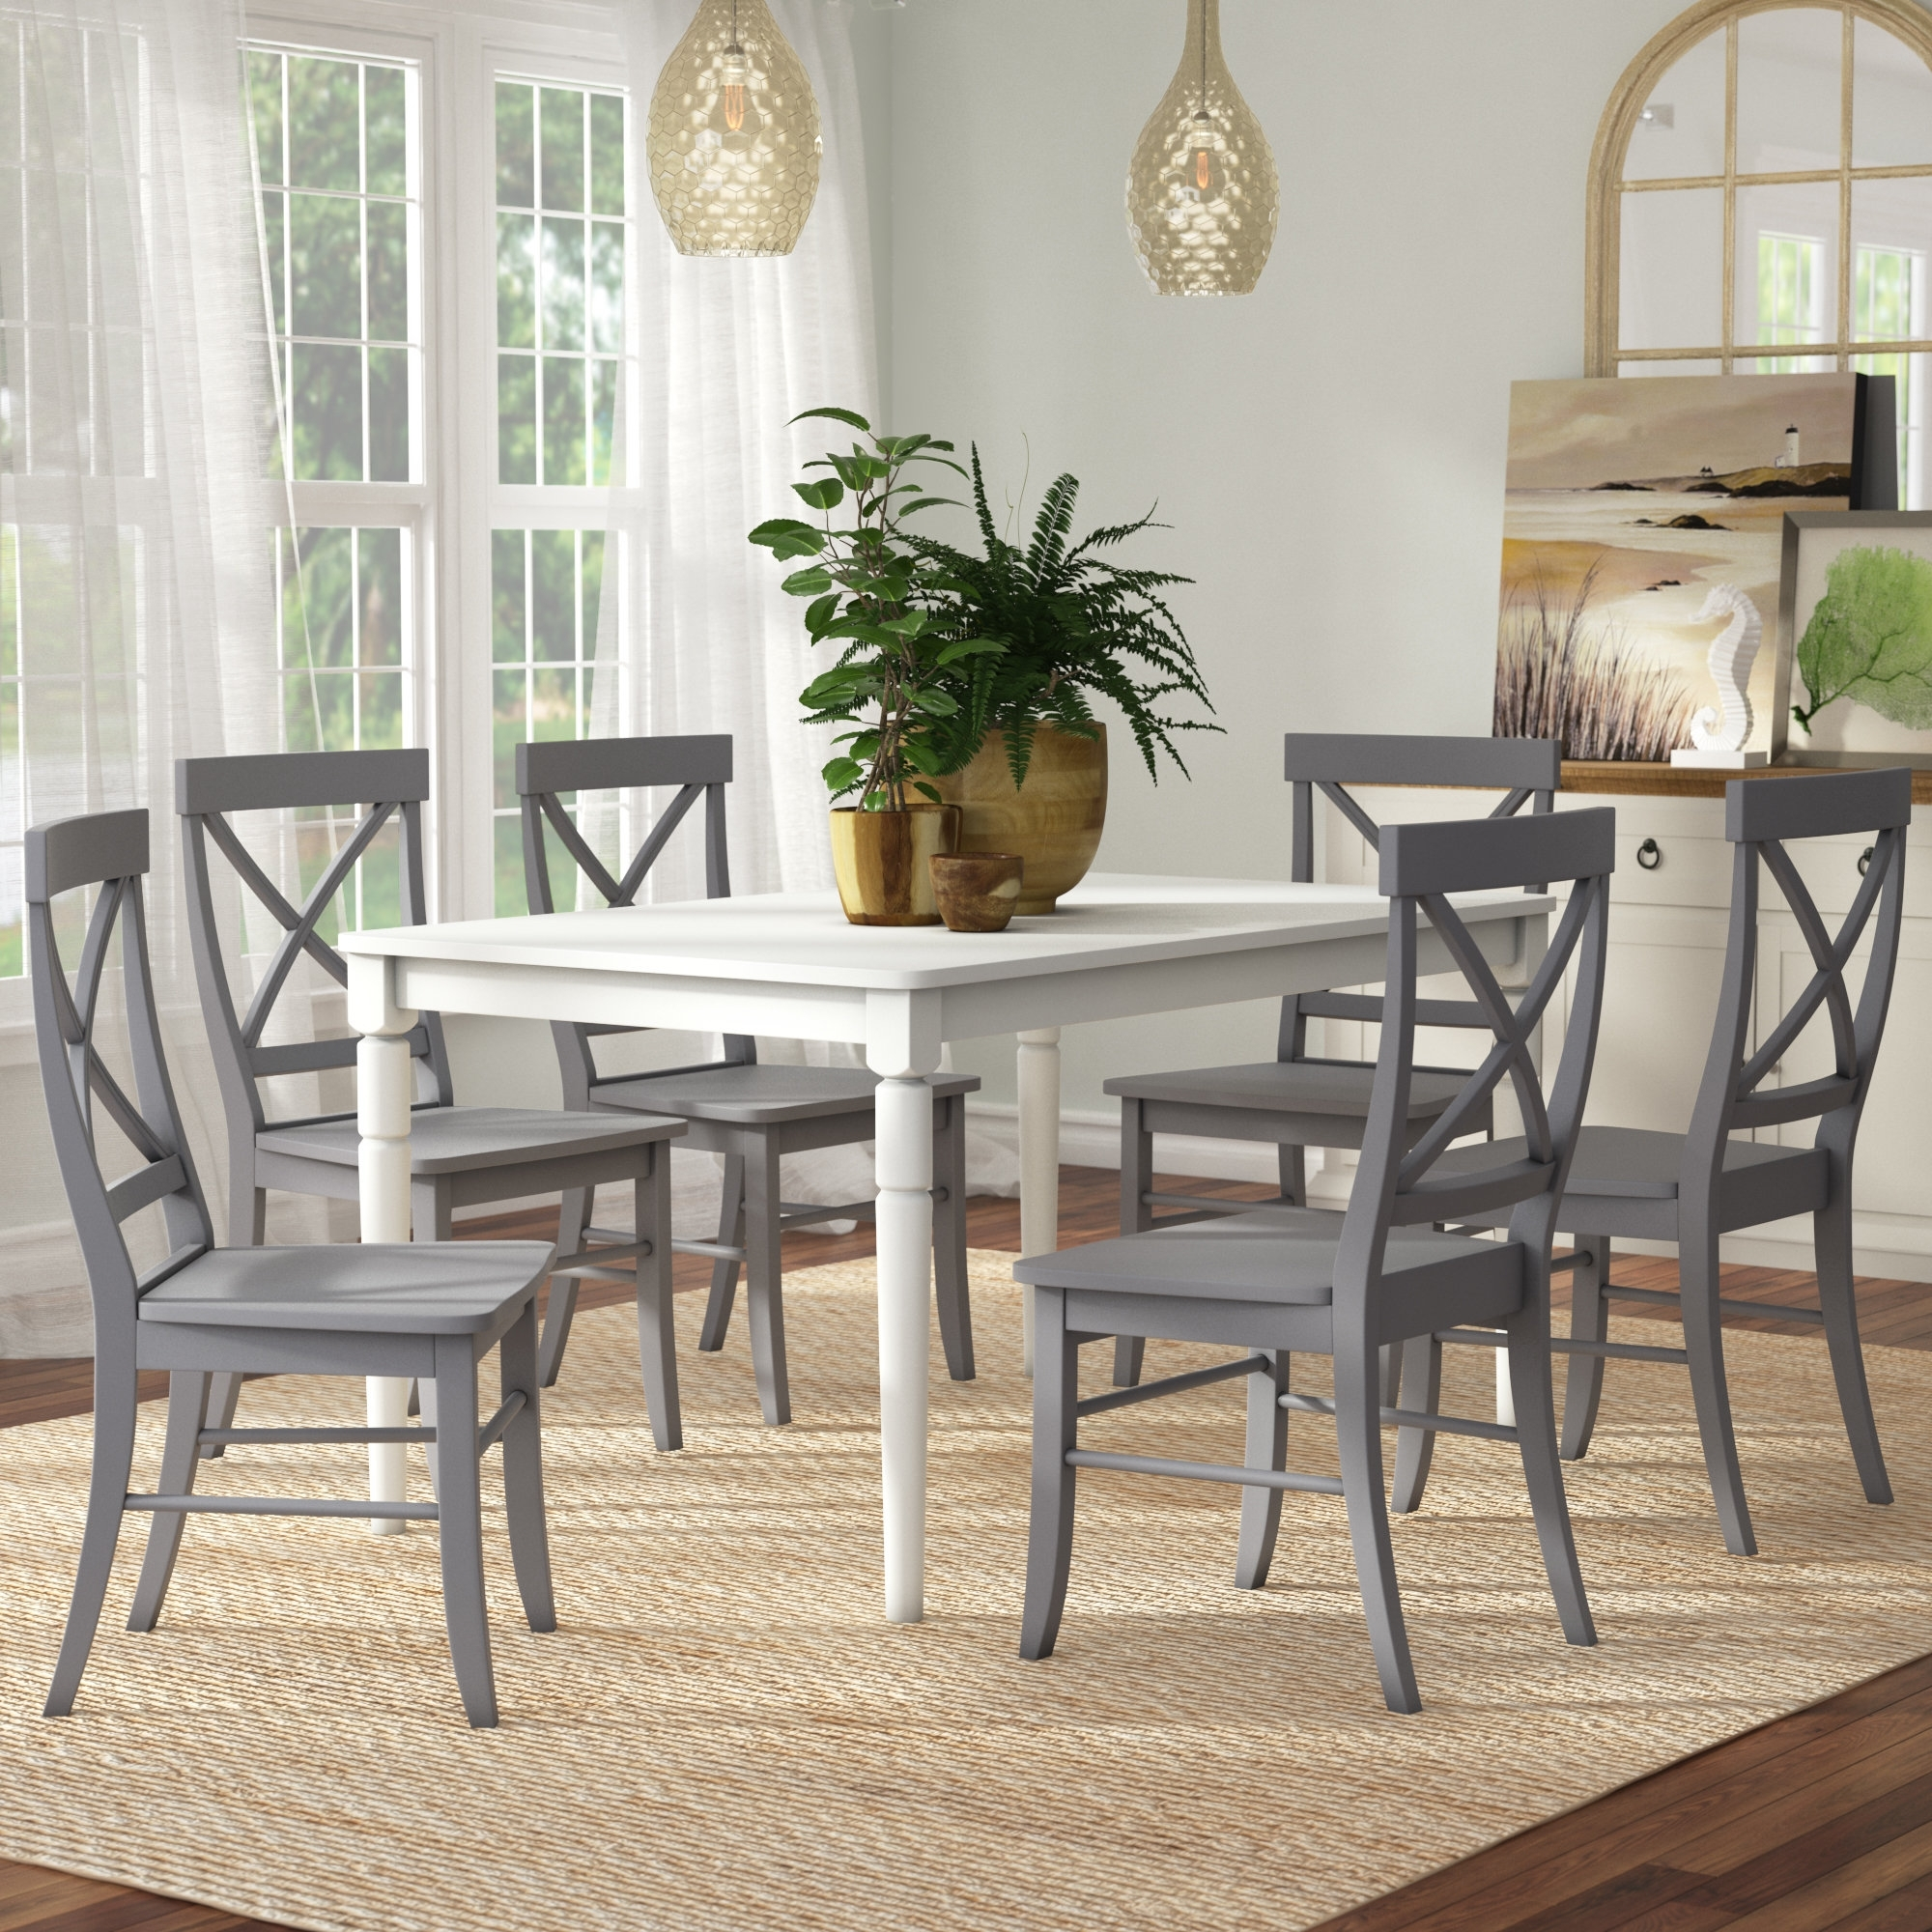 Most Recent Beachcrest Home Brookwood 7 Piece Dining Set & Reviews (View 7 of 25)